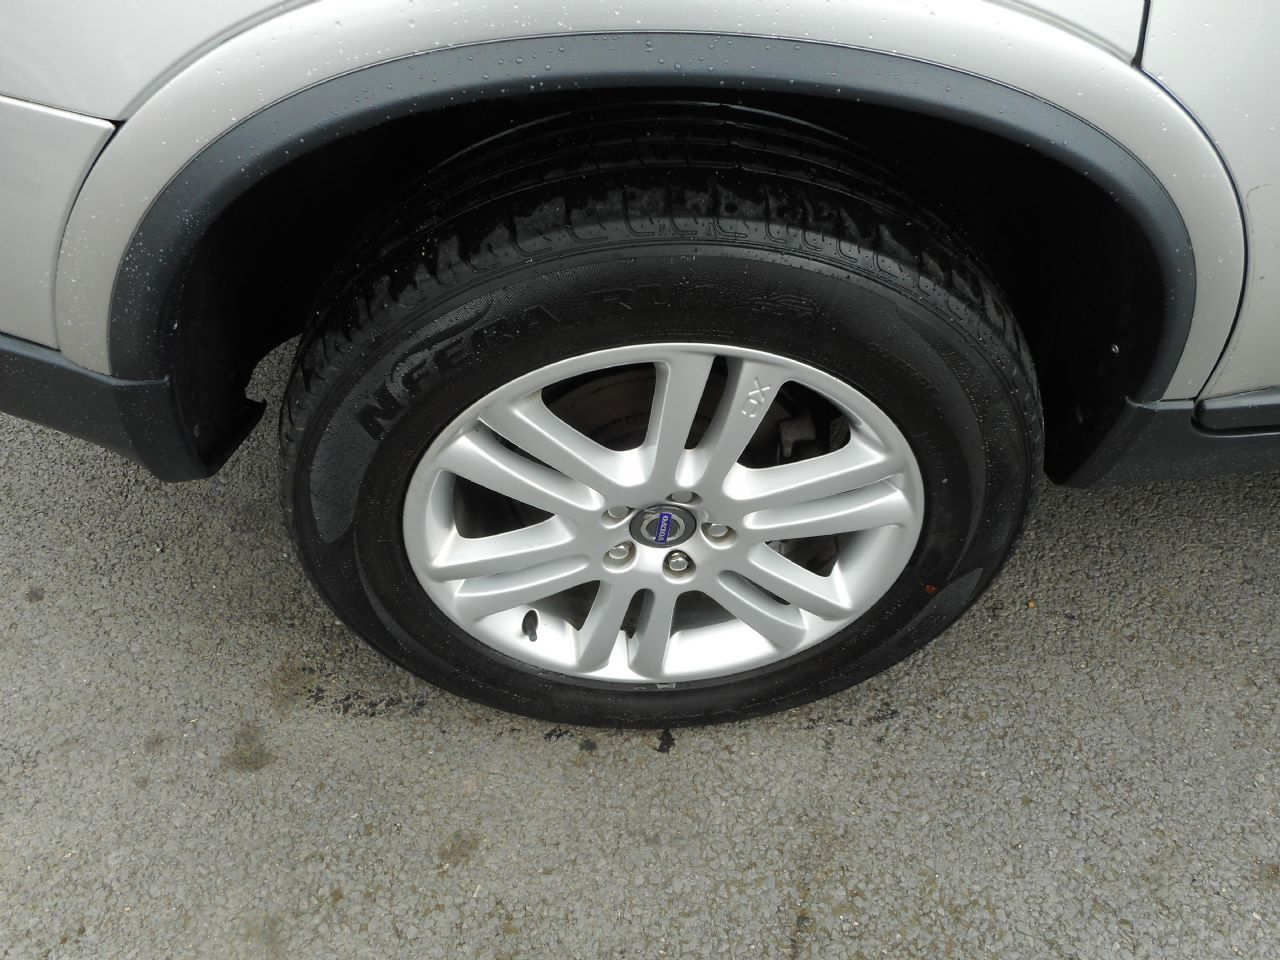 VOLVO XC90 D5 AWD (200 bhp) SE Lux Geartronic (2011) - Picture 6